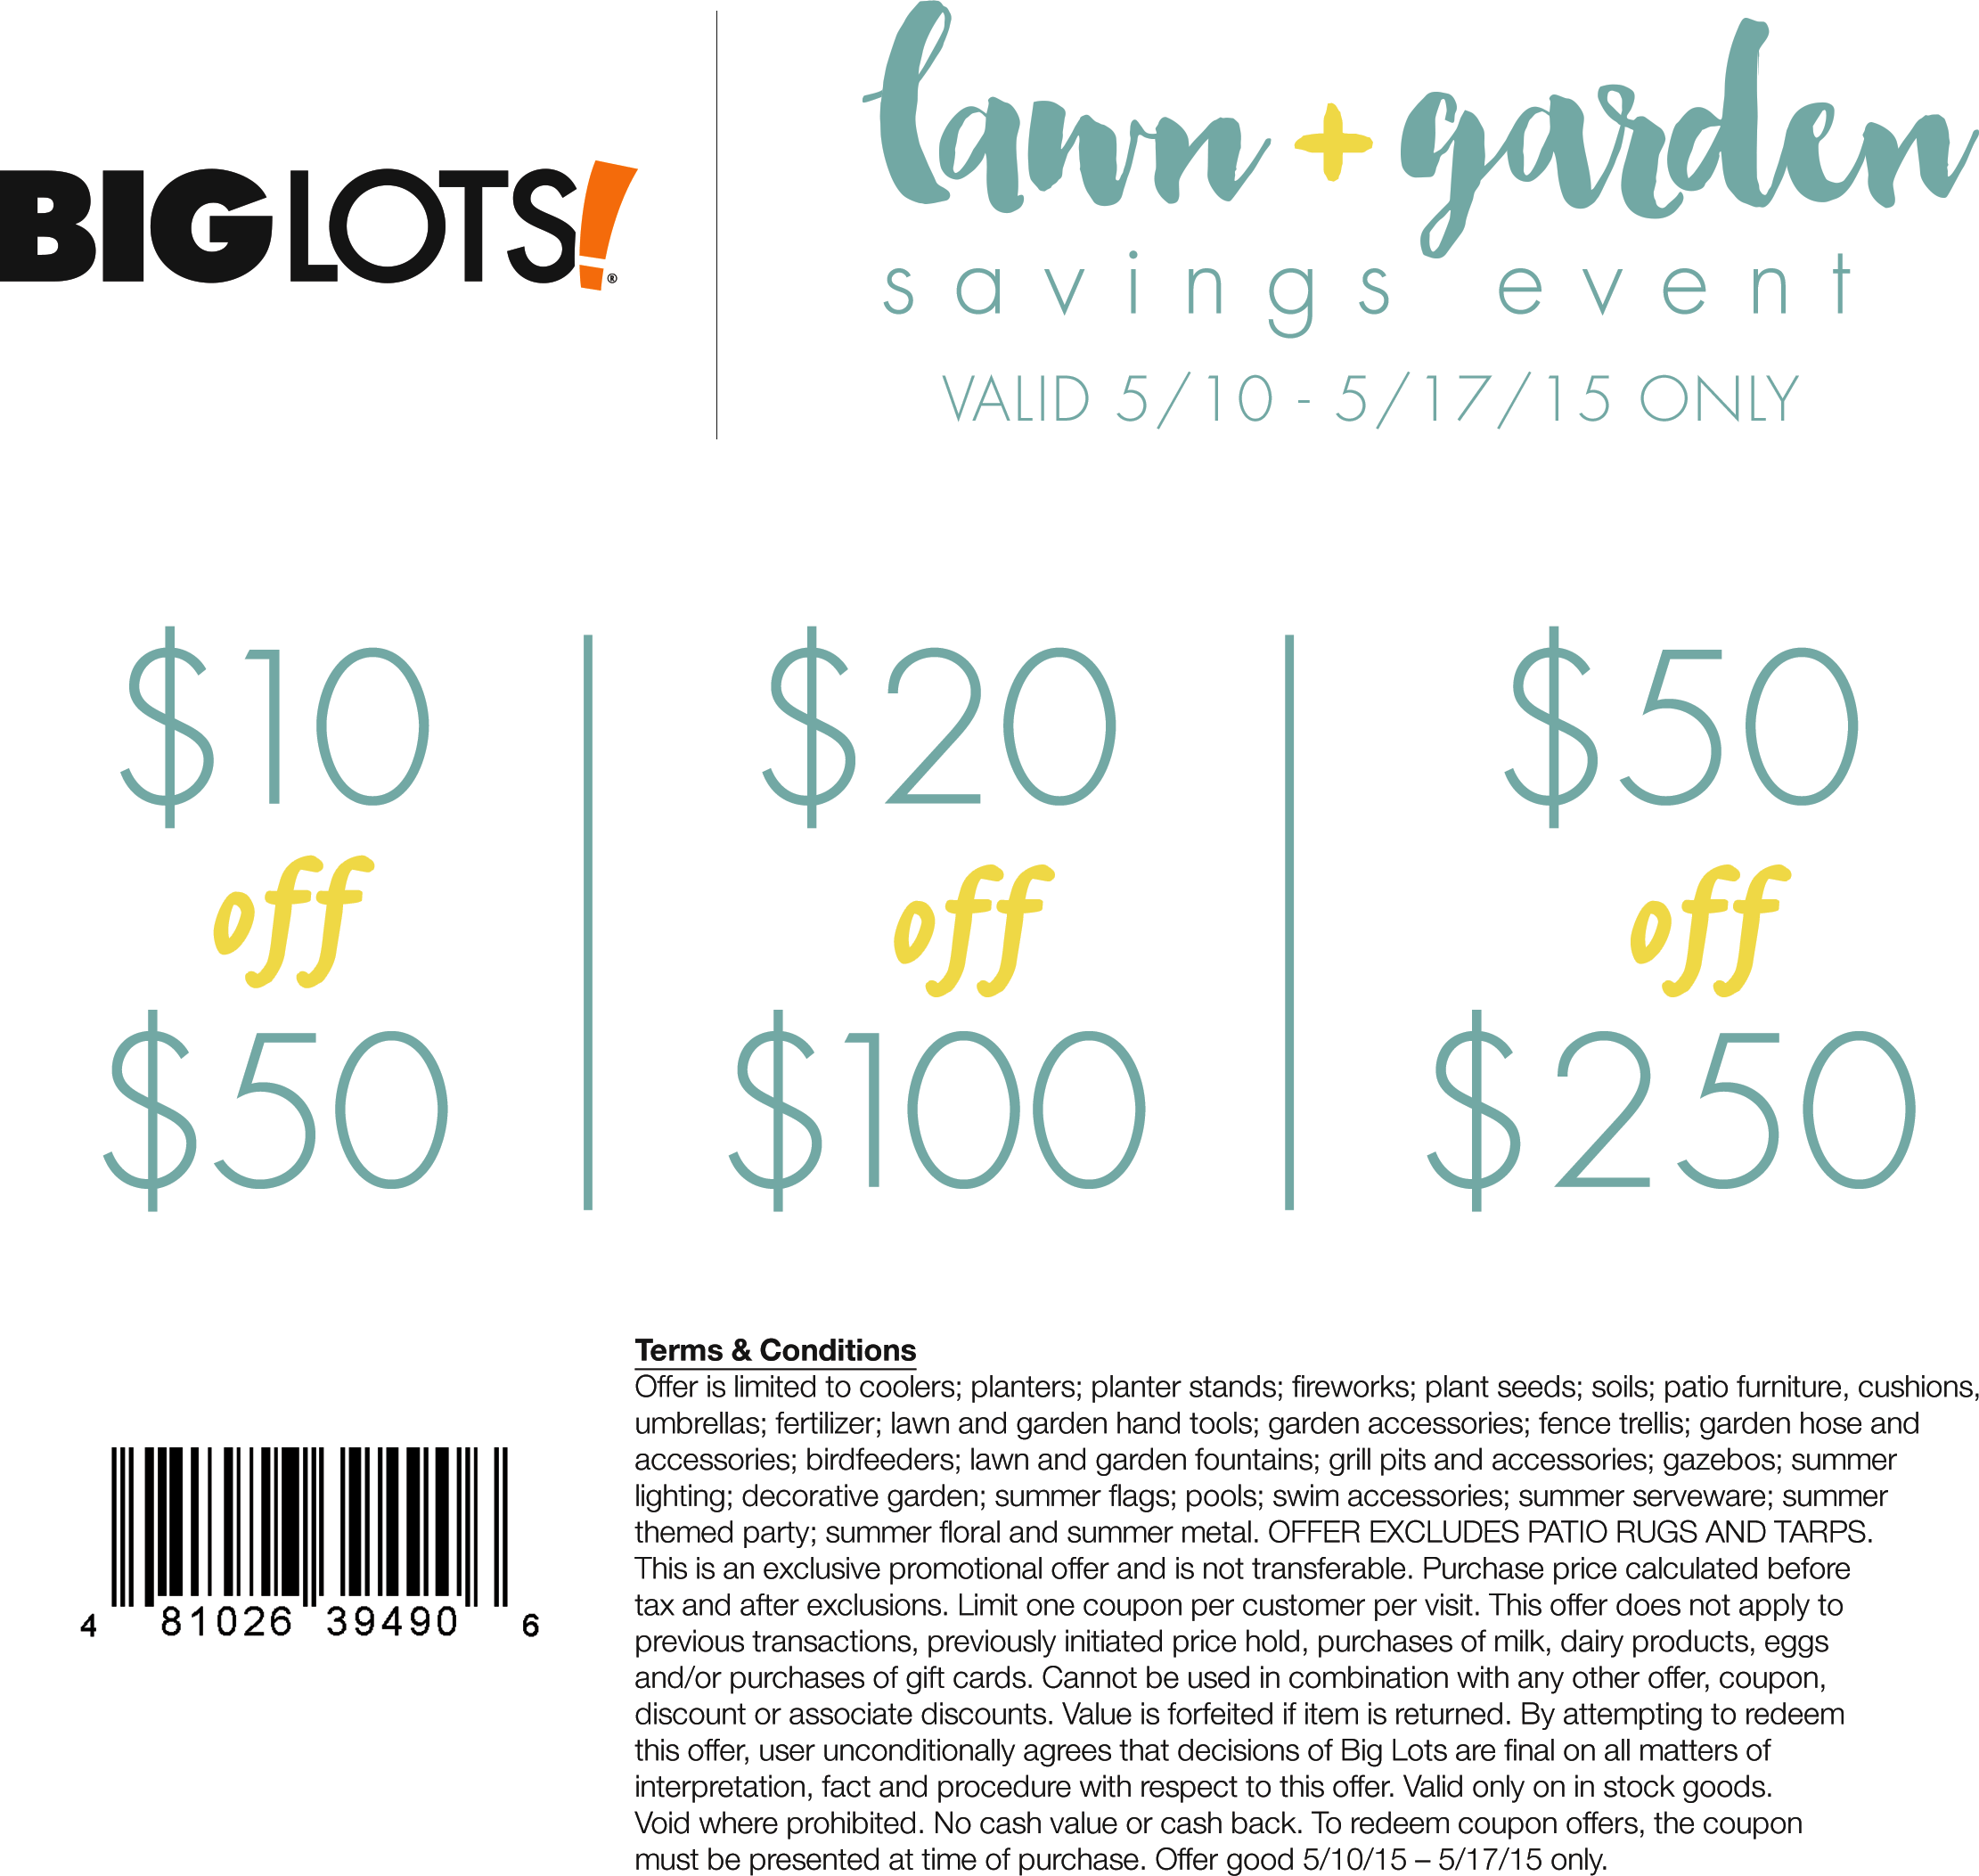 Big Lots Coupon March 2018 $10 off $50 & more on lawn & garden at Big Lots